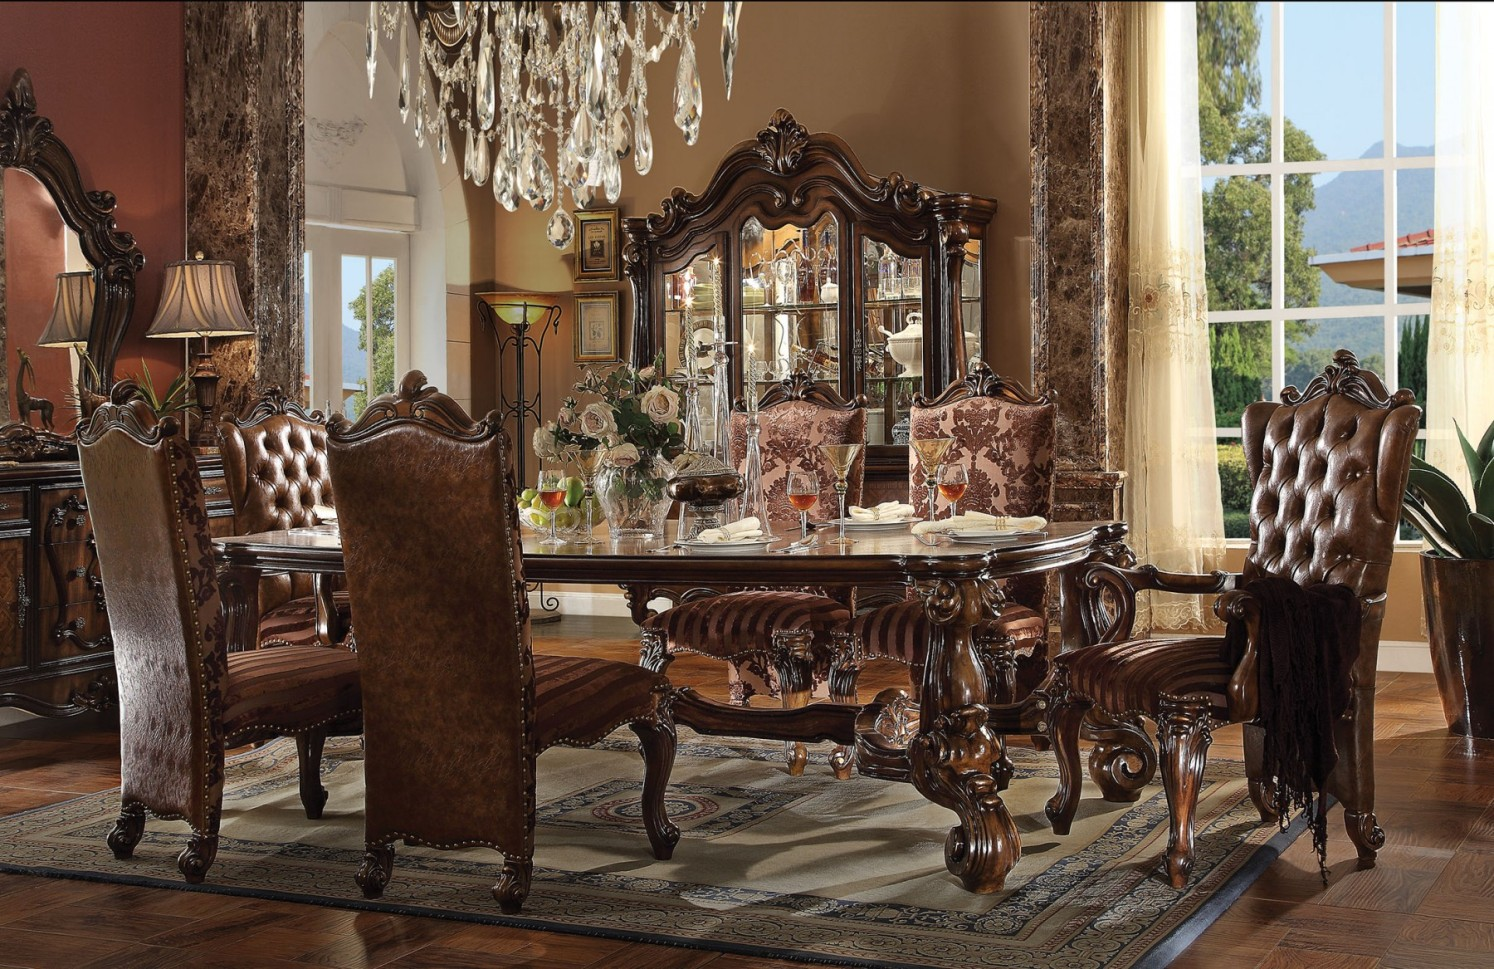 Formal dining room sets how elegance is made possible for Photos of dining room sets